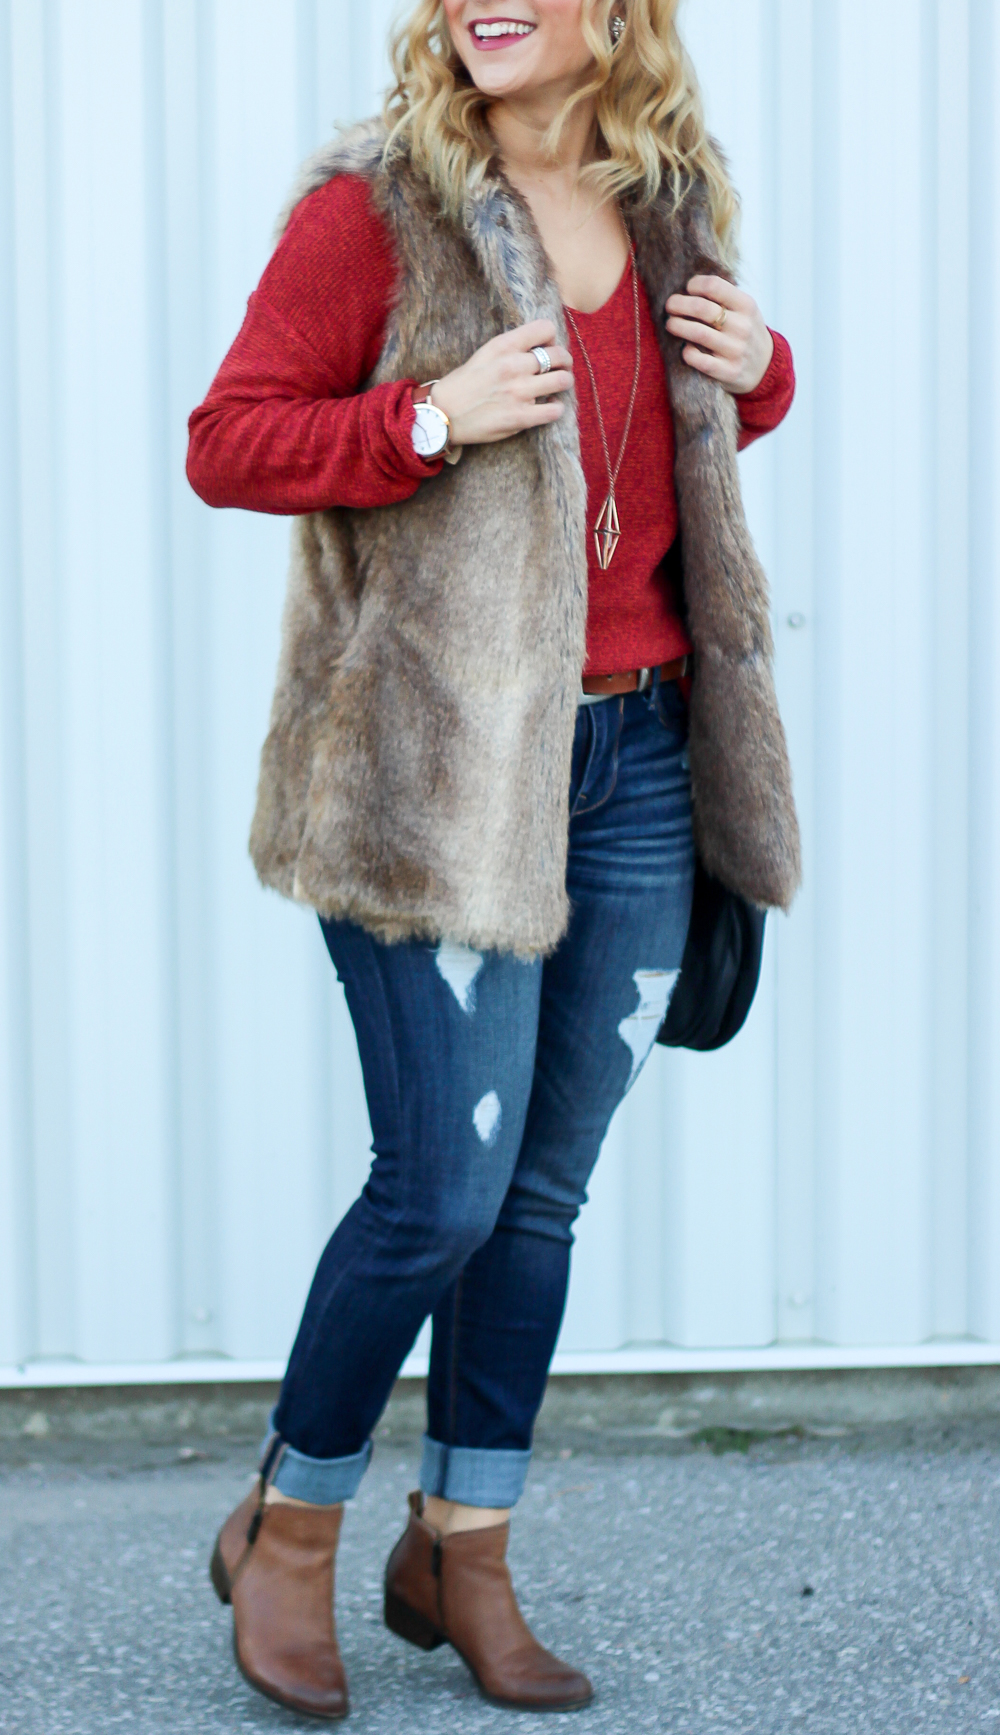 Canadian fashion blogger, Jackie Goldhar, from Something About That wears a faux fur vest from Zara, v-neck sweater from Old Navy and jeans from Express